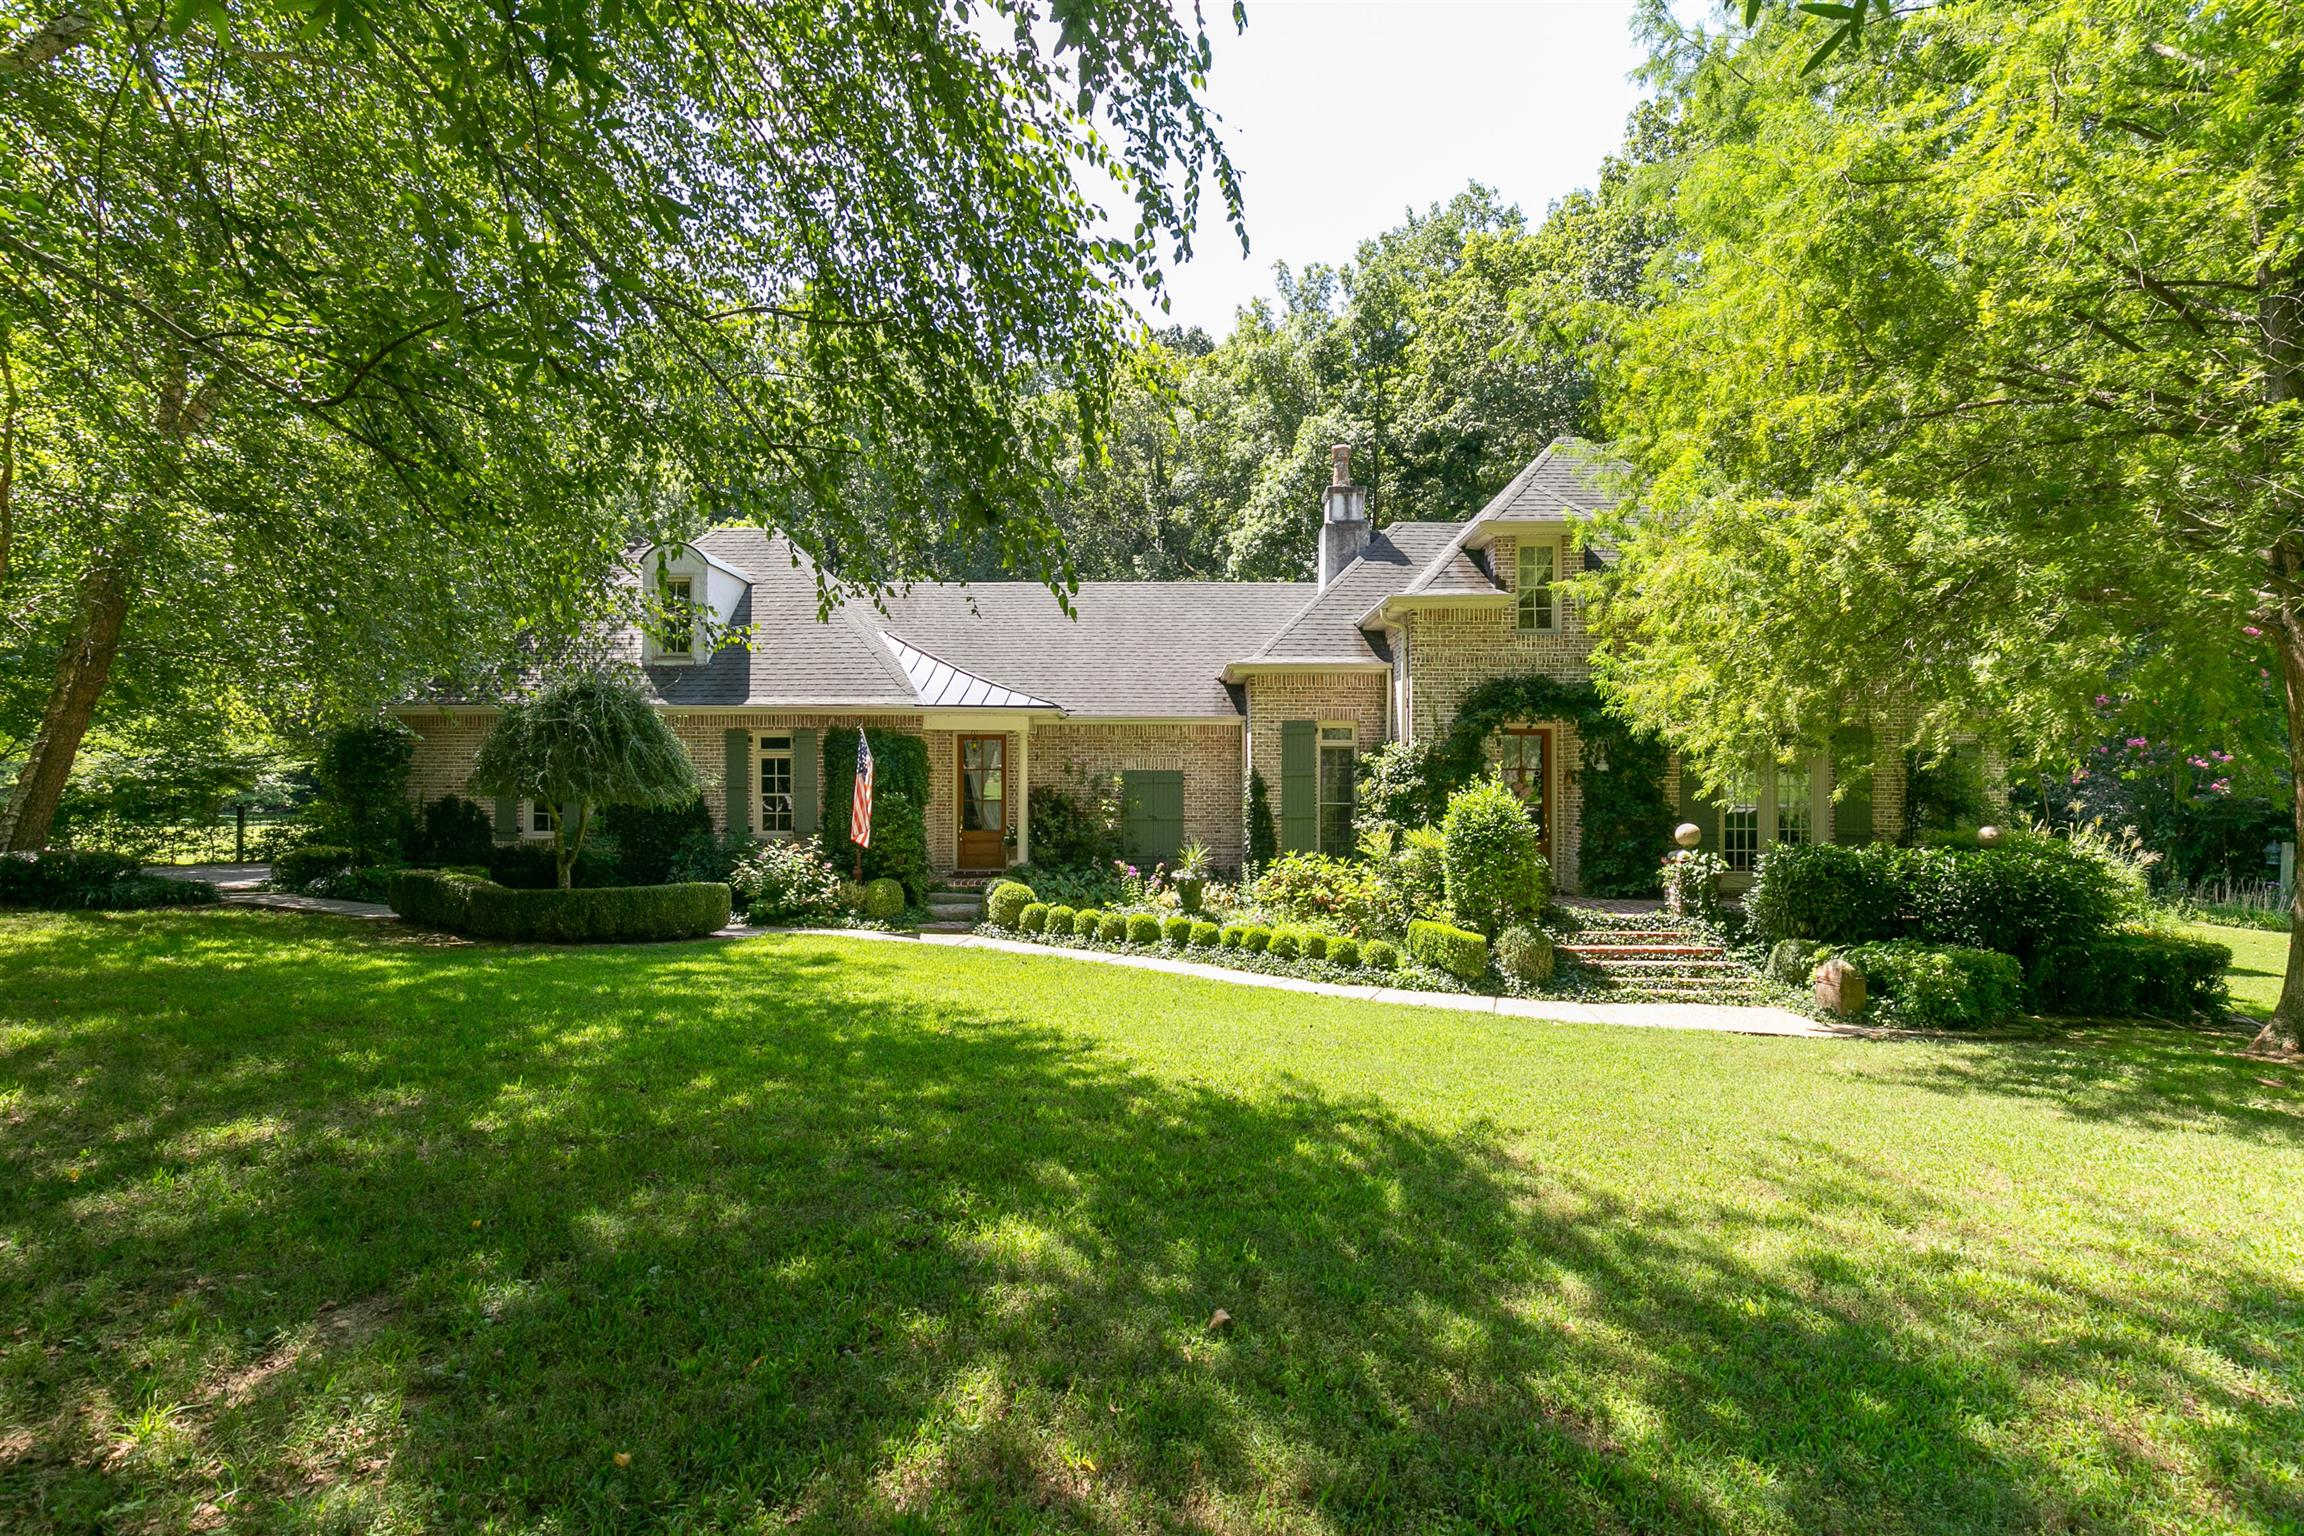 600 Fairway Trl, Springfield, TN 37172 - Springfield, TN real estate listing